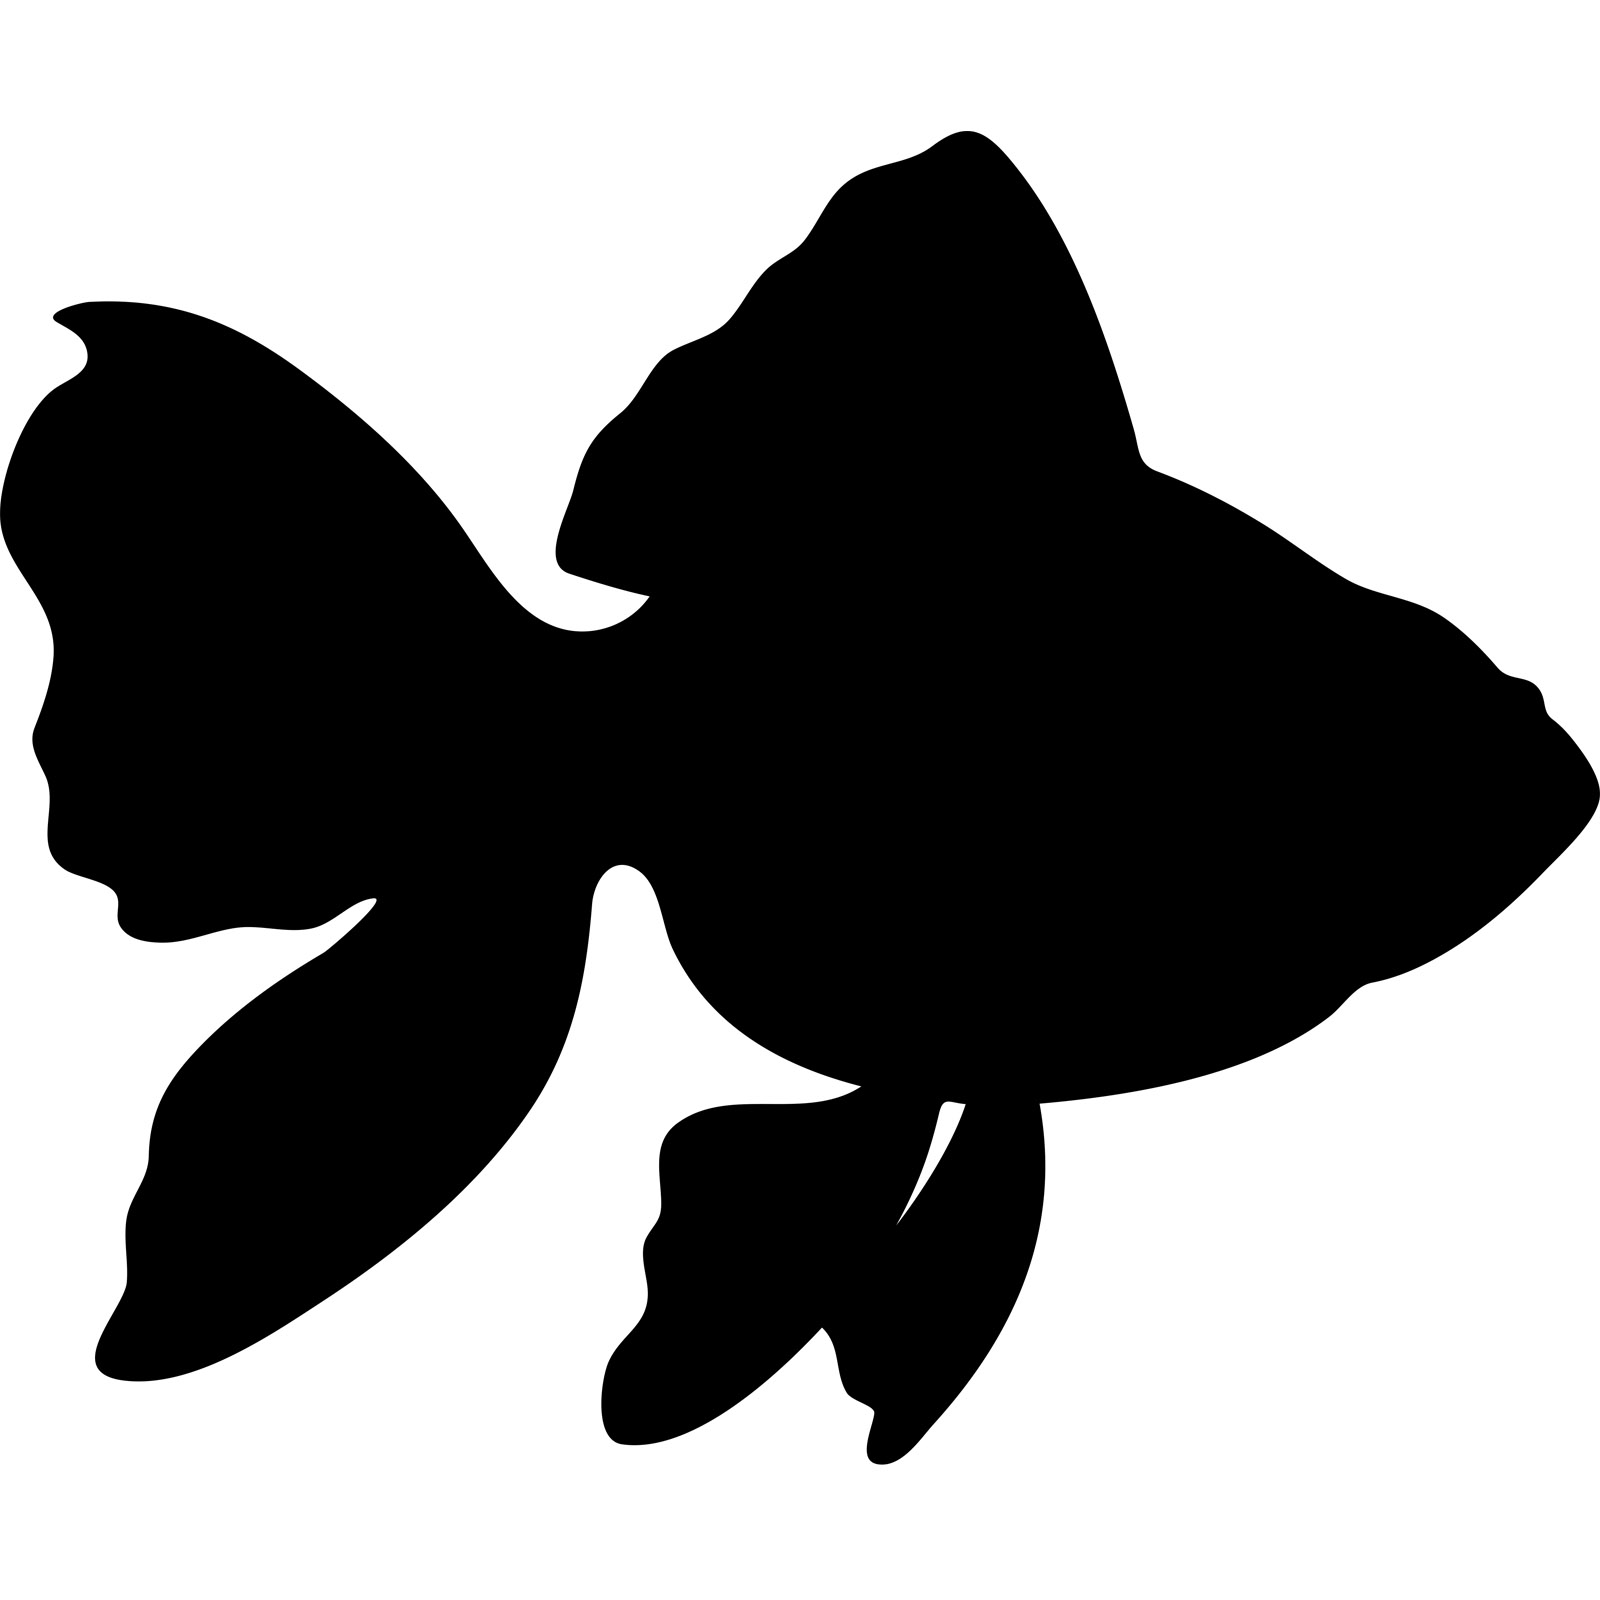 Shadow clipart fish #6